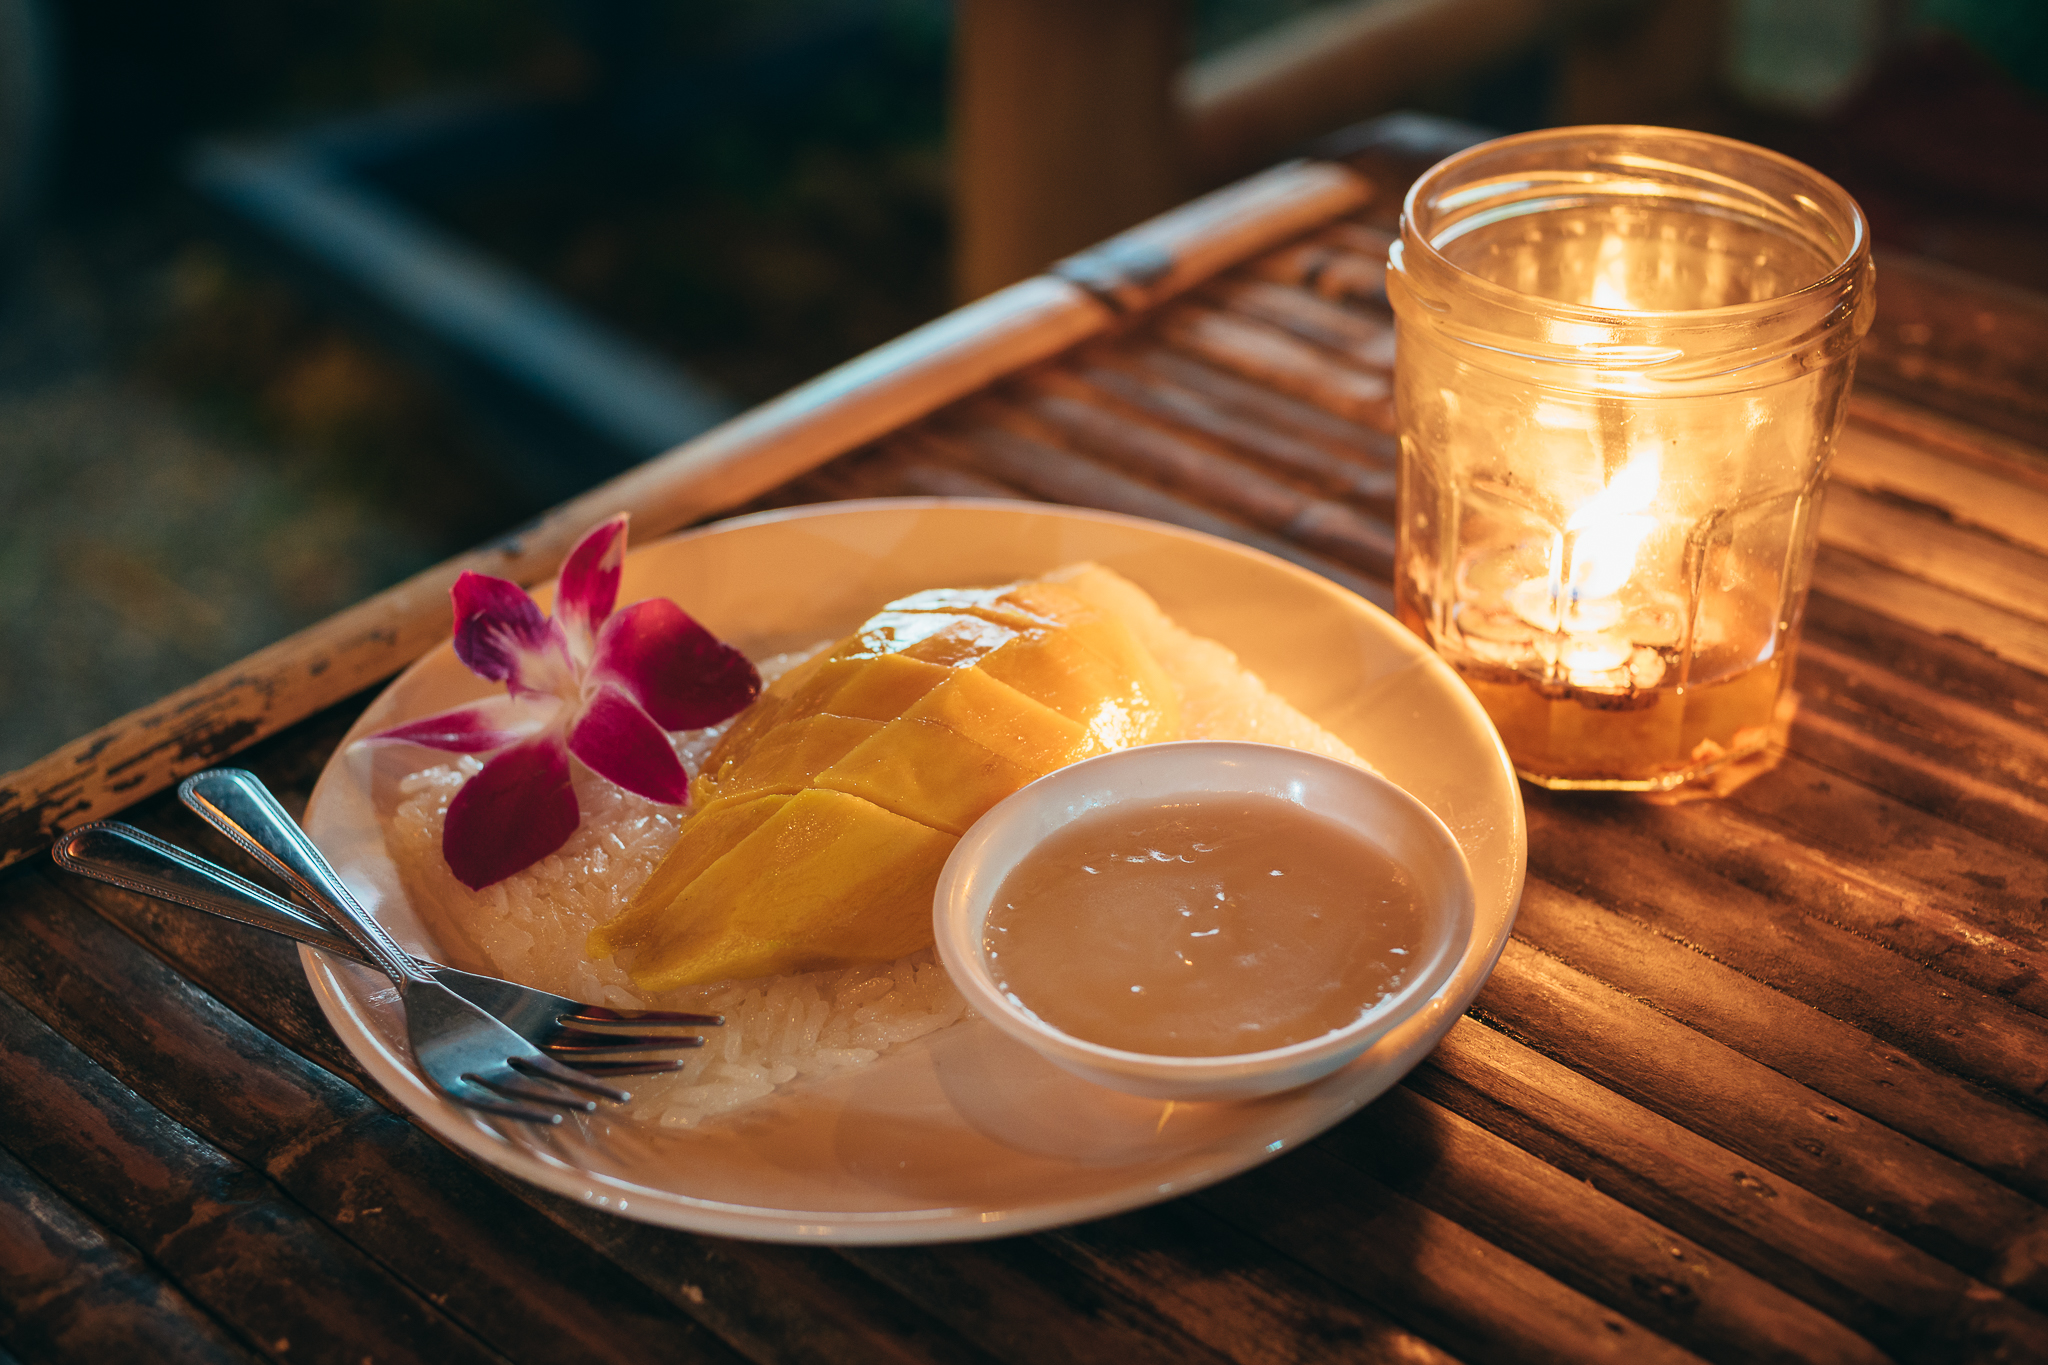 Best for last: Mango sticky rice with coconut milk. The only thing we regret is not having discovered this earlier on our trip!